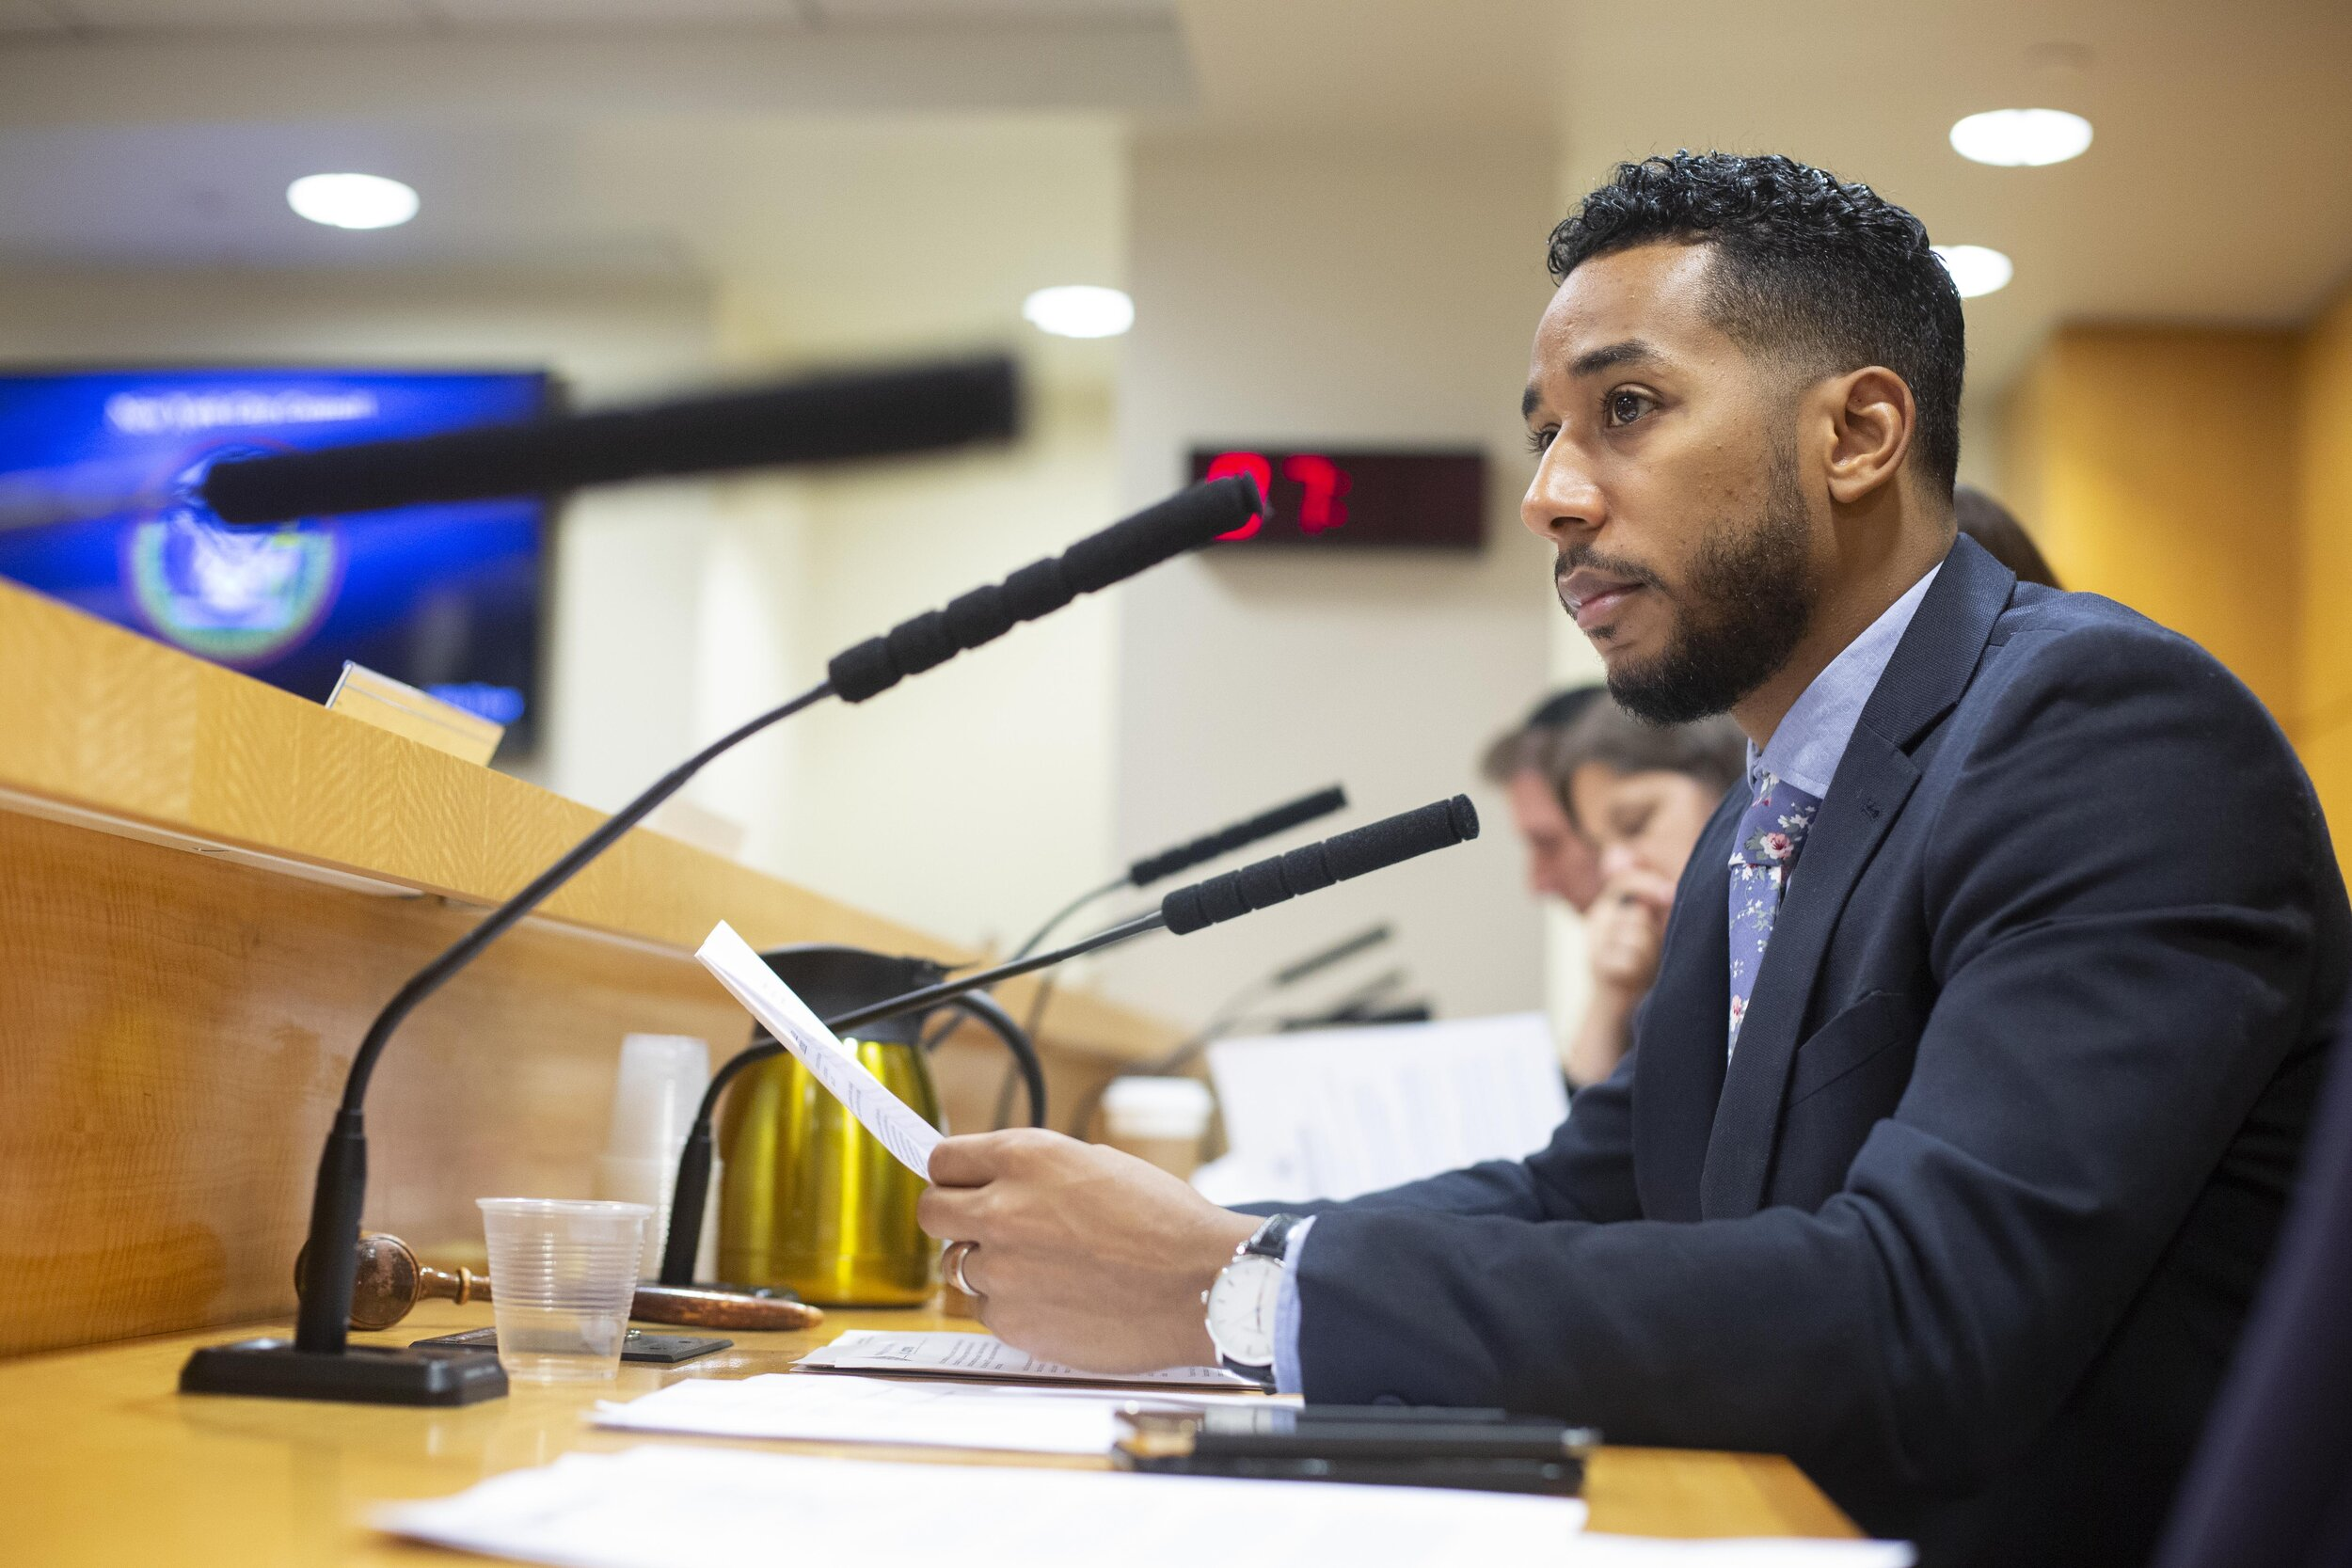 Councilmember Antonio Reynoso, who represents parts of Queens and Brooklyn, introduced a bill into the City Council that would require commercial waste zones, but would only allow for one waste carrier per zone, to be vetted by the city government. Photo by John McCarten via City Council.